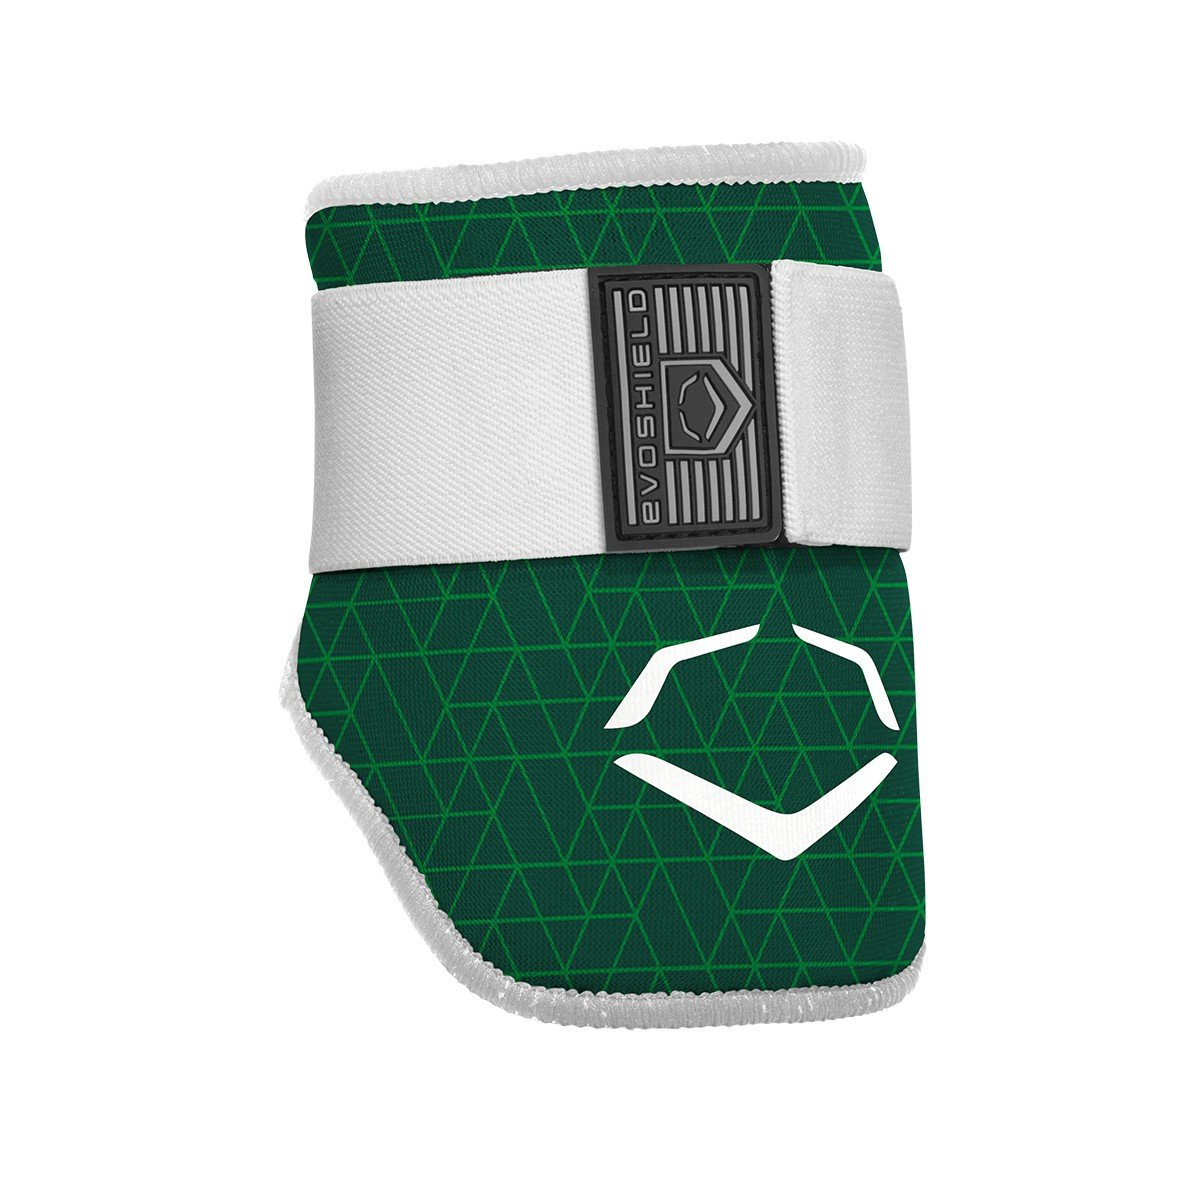 EvoShield EvoCharge Batter's Elbow Guard - Adult, Green